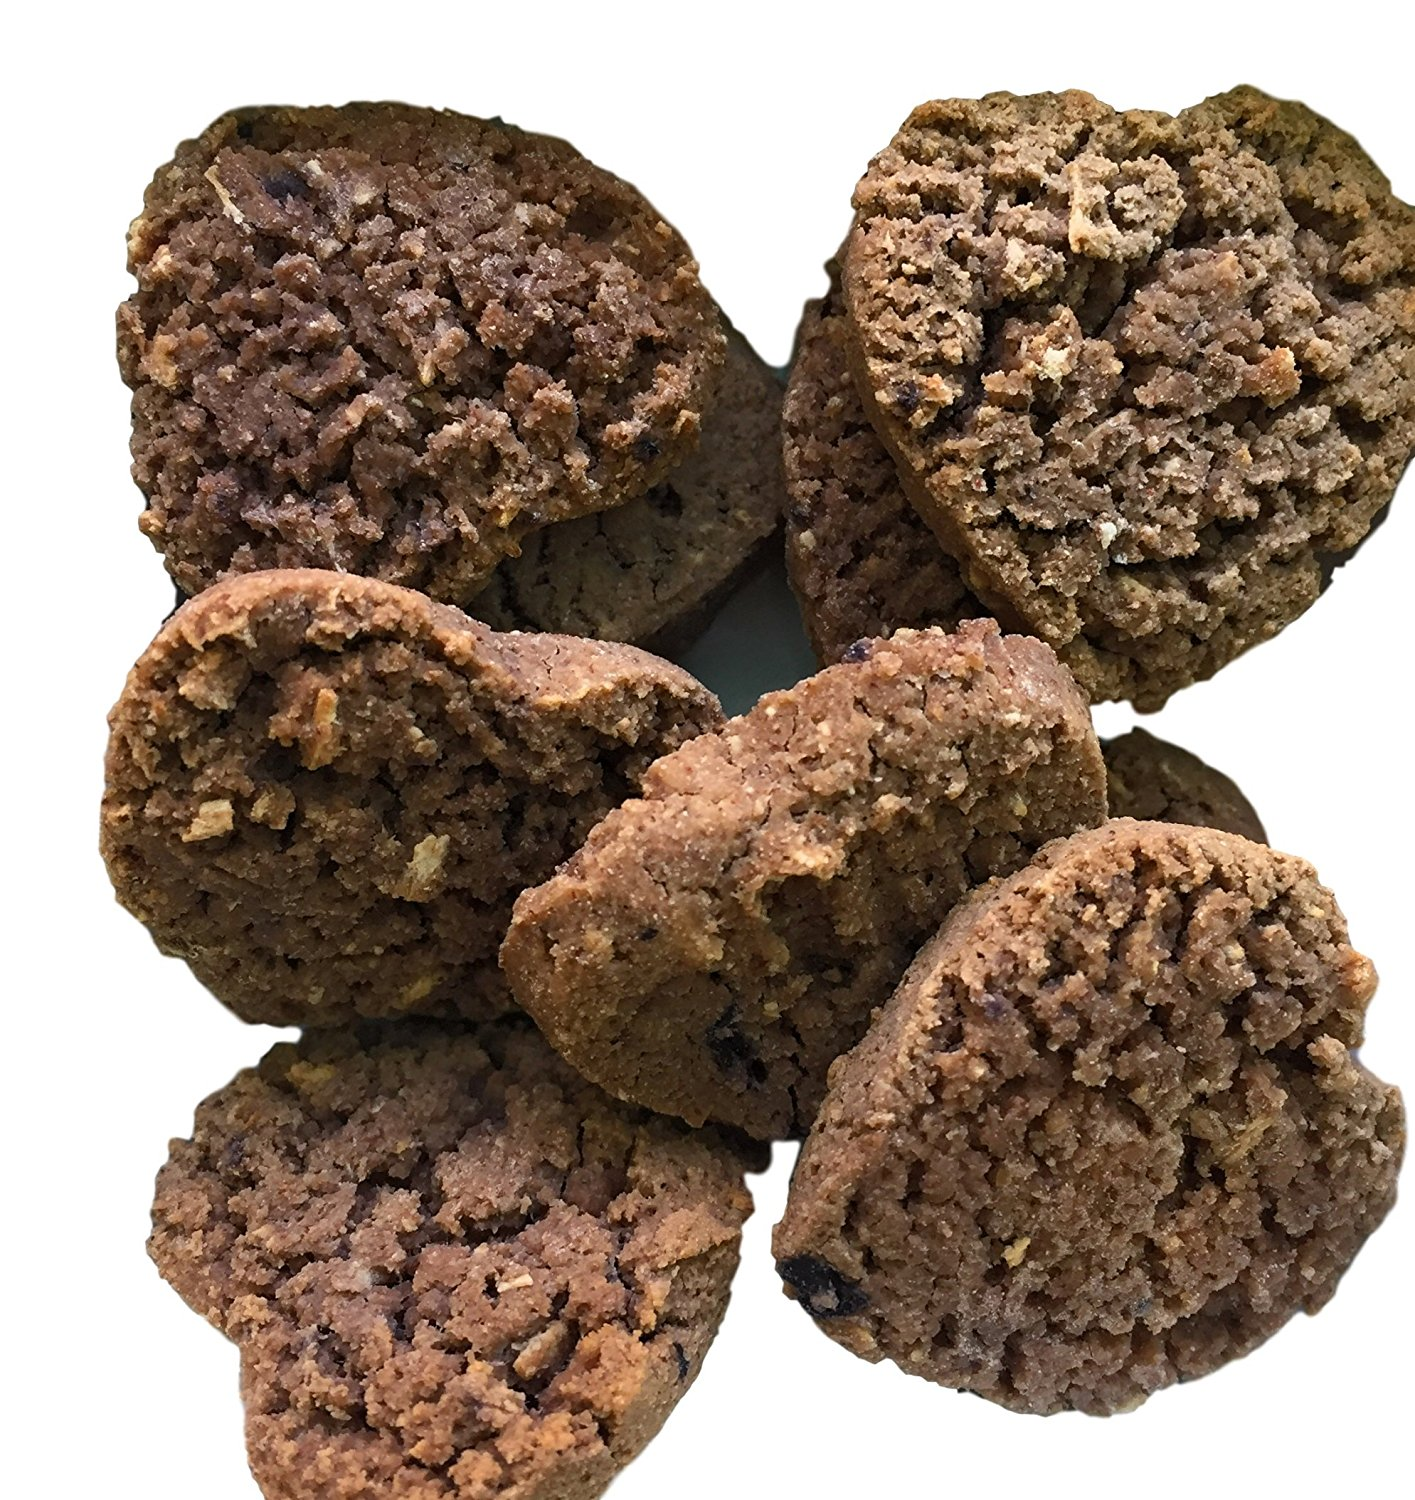 image of healthy dog treat